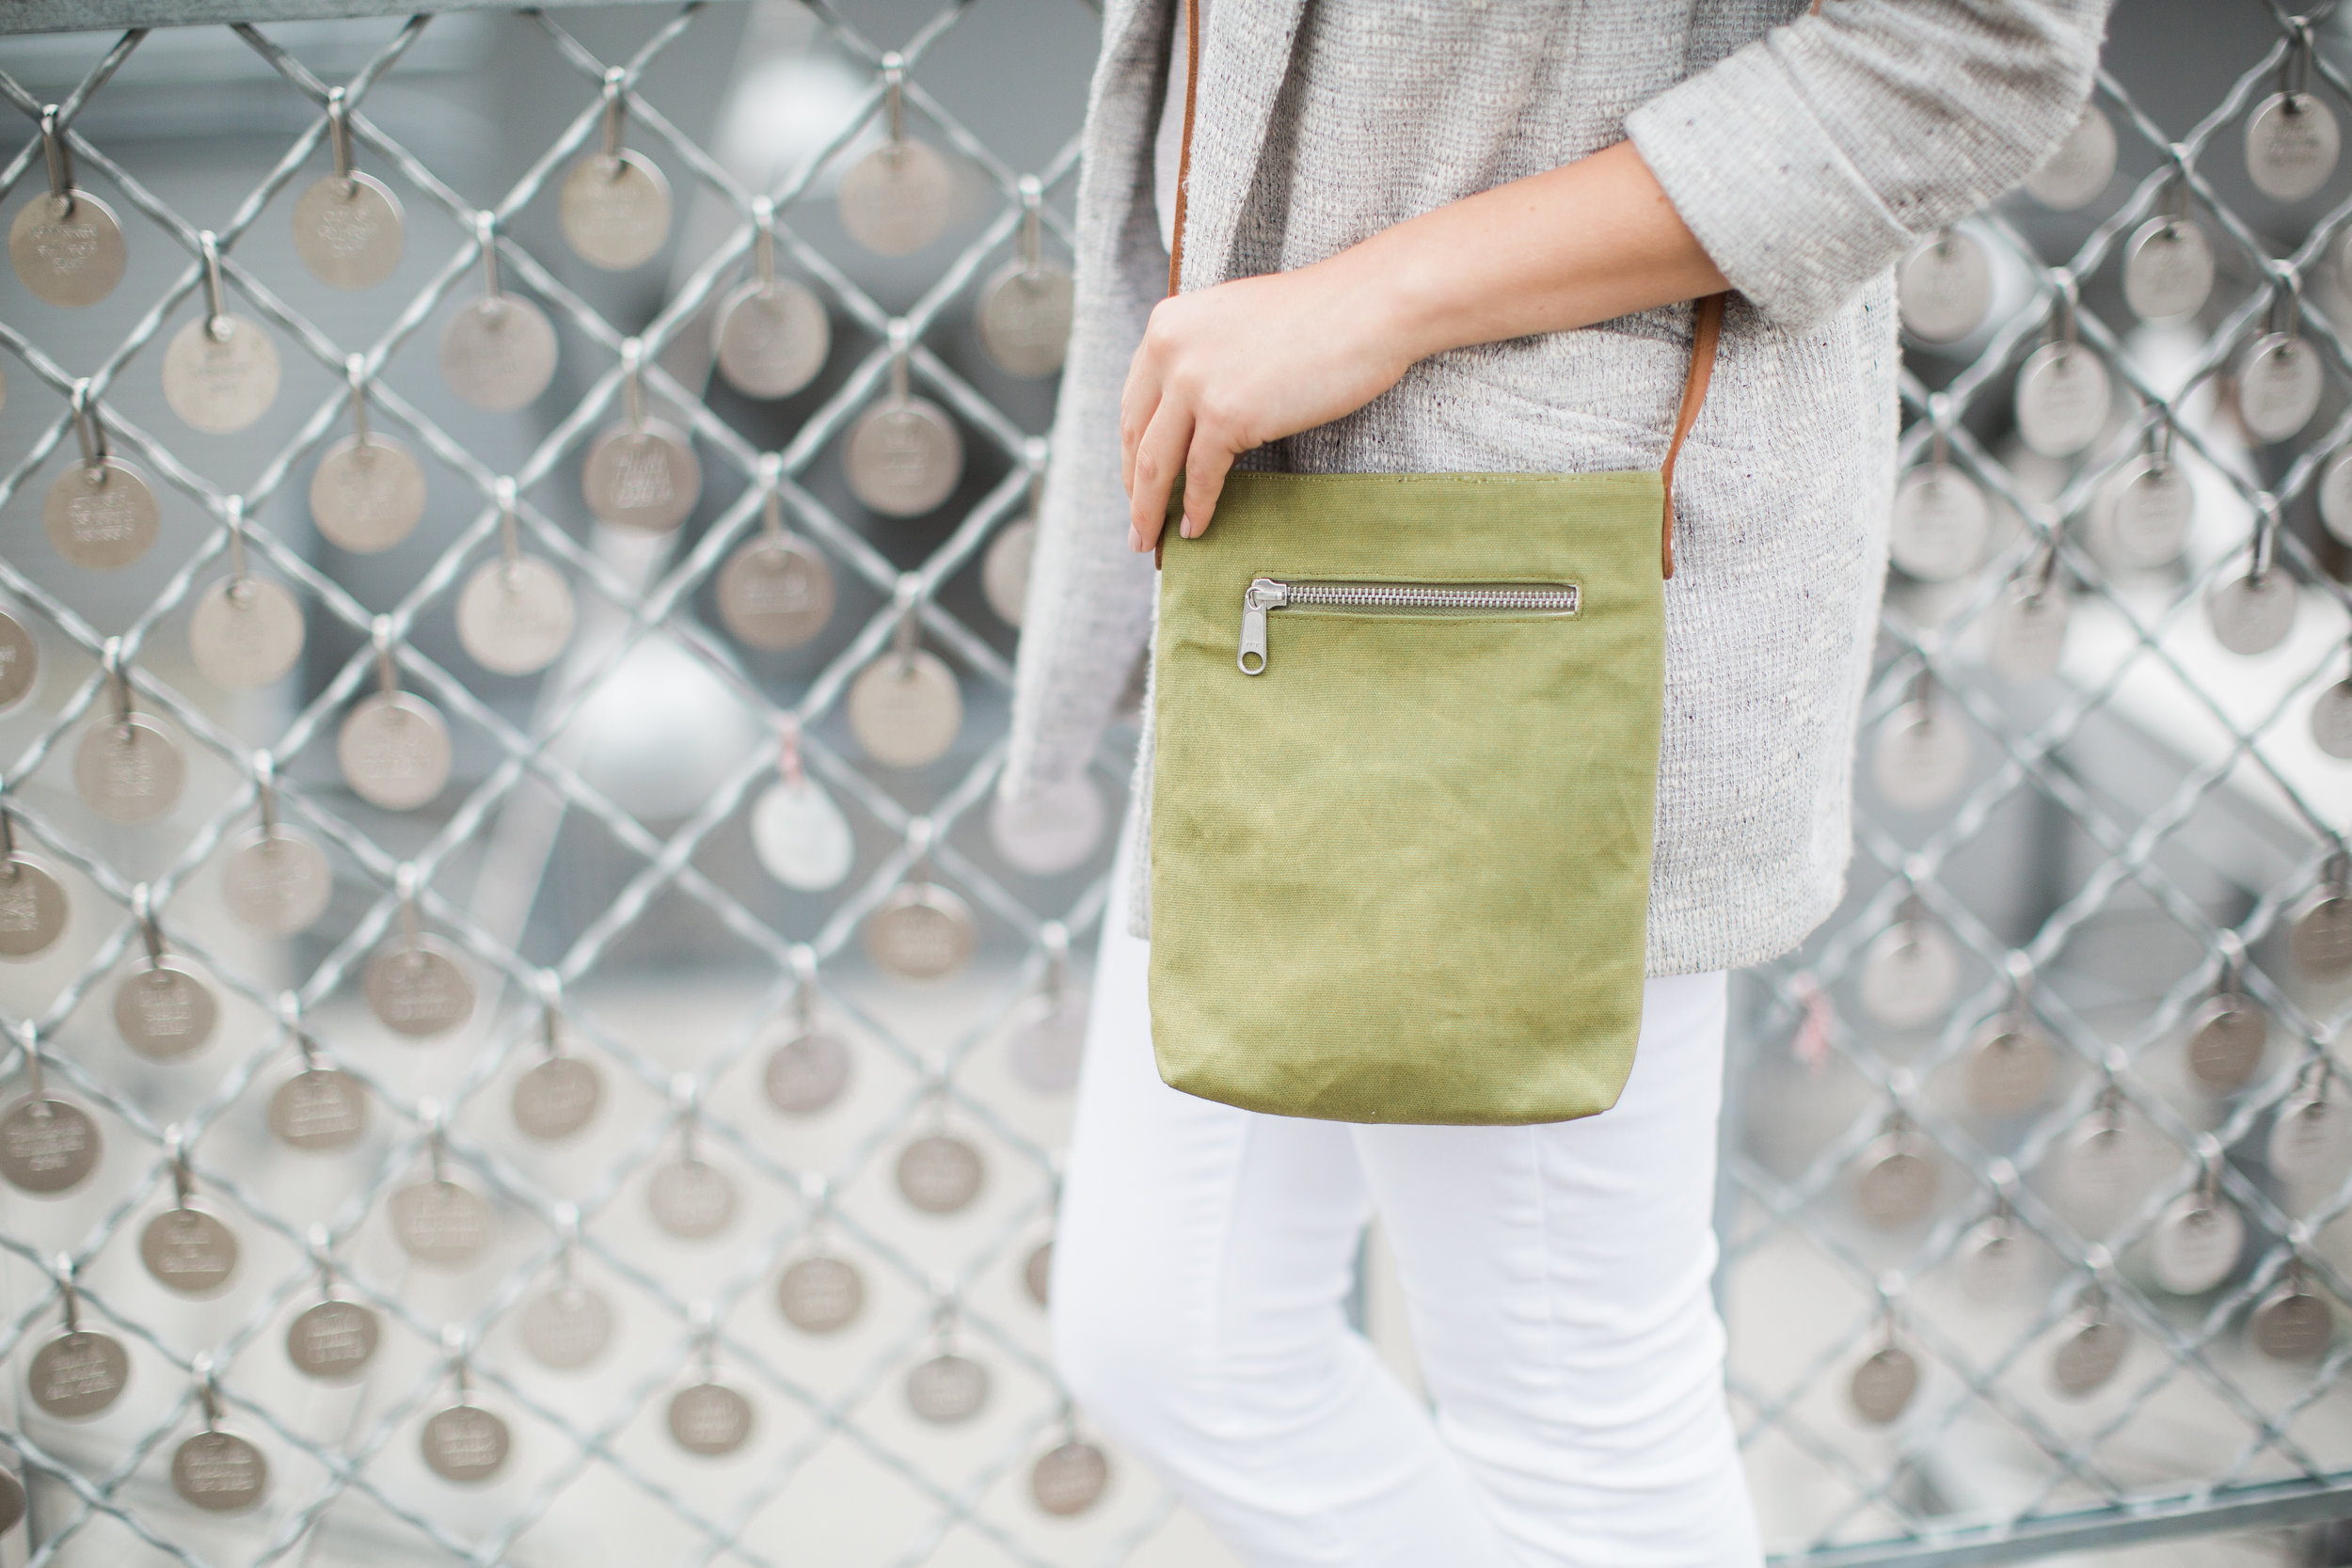 sathi-portrait-crossbody-janelle elaine photography-10.jpg